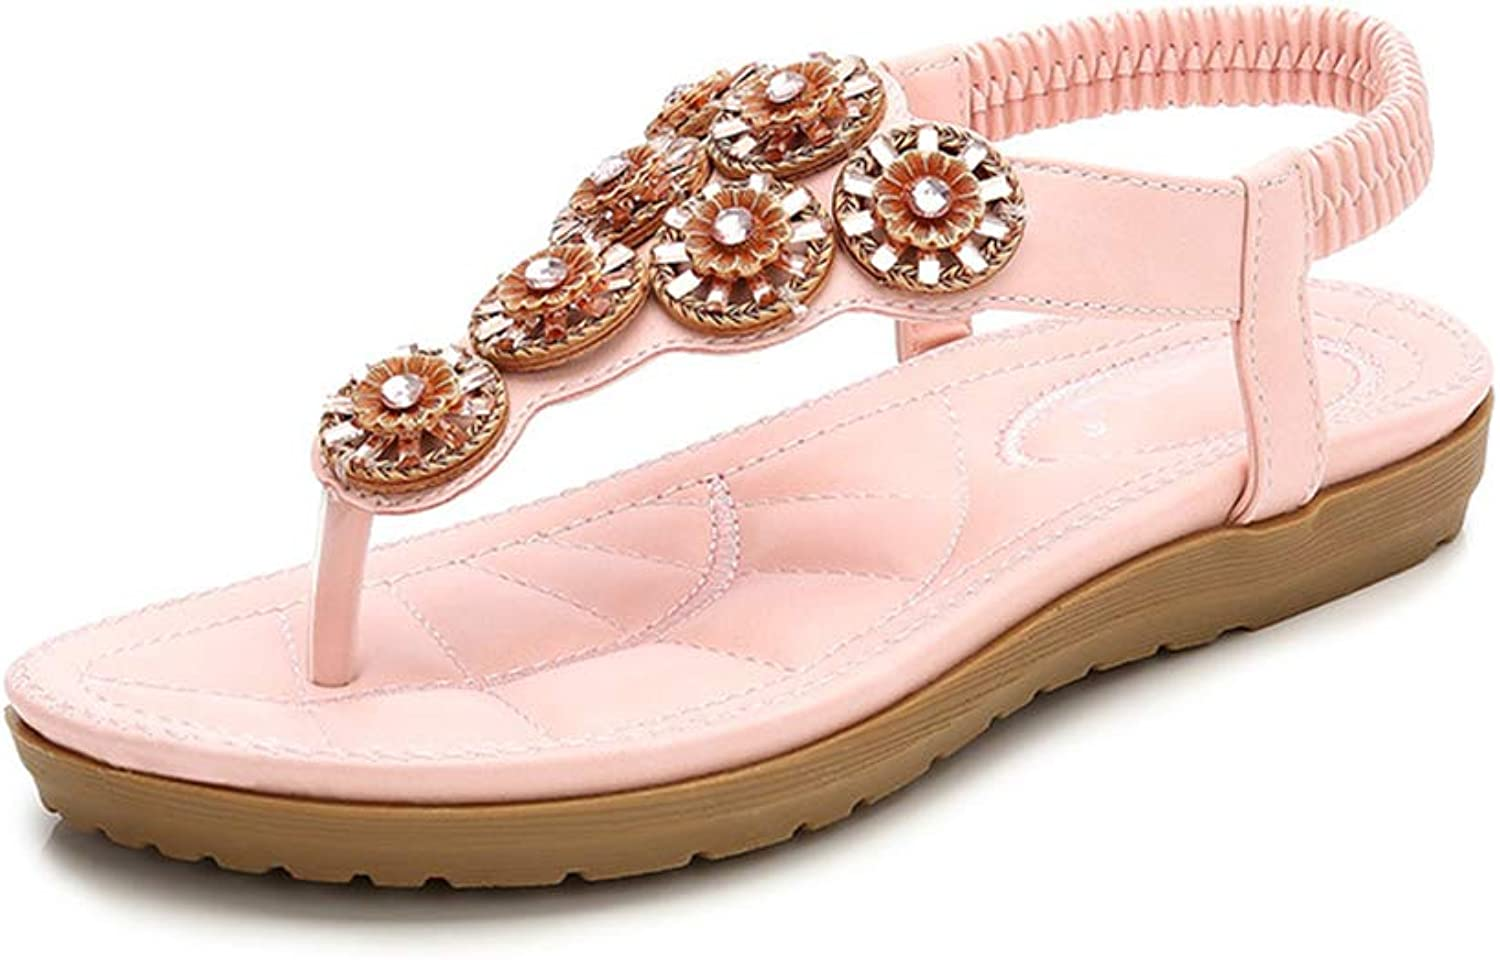 Sandals Women's Summer Leather Boho Thongs Sandals Peep-Toe Flip Flops Flat shoes